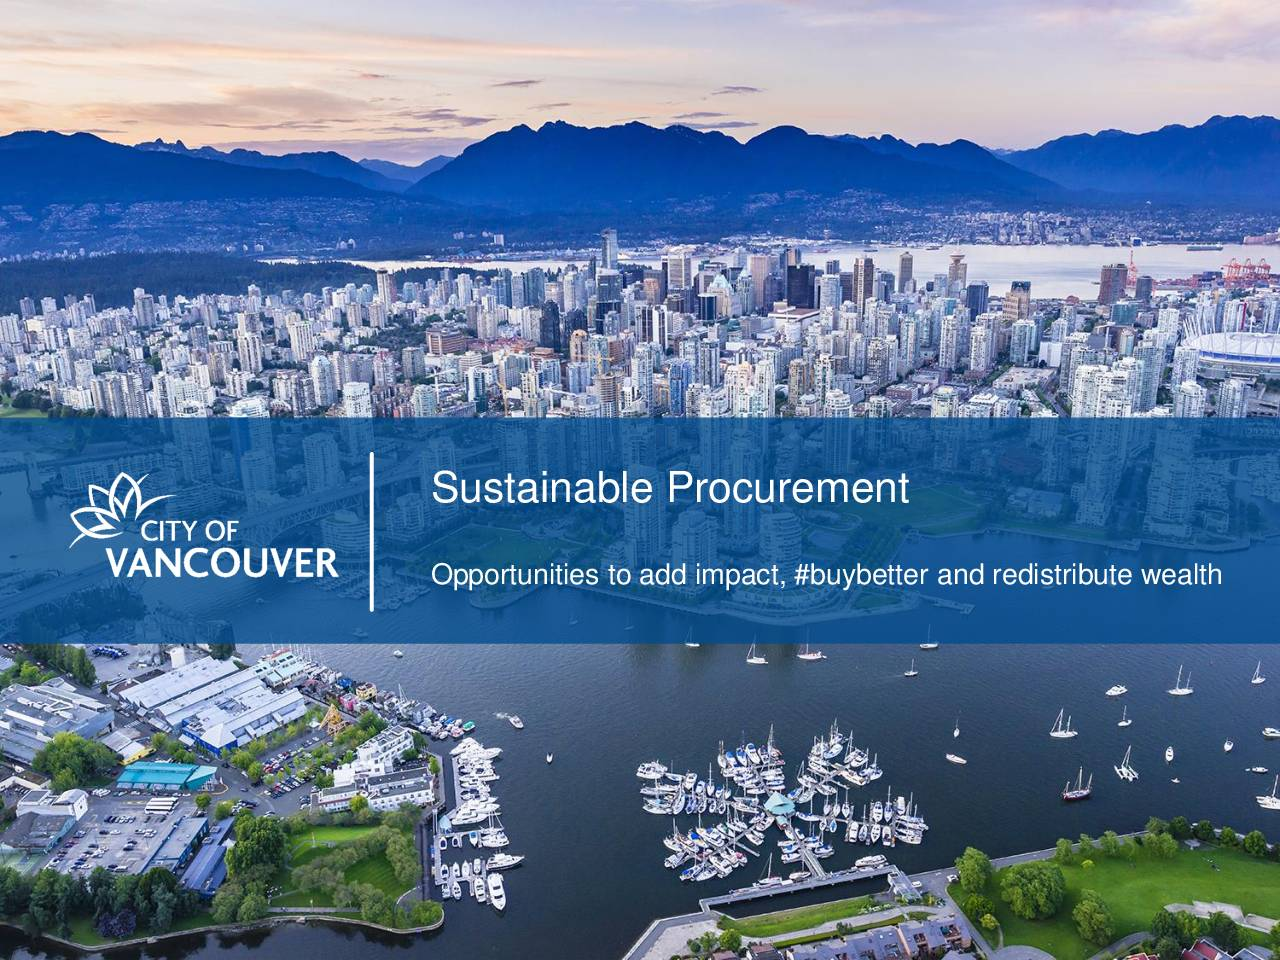 City of Vancouver Sustainable Procurement Overview